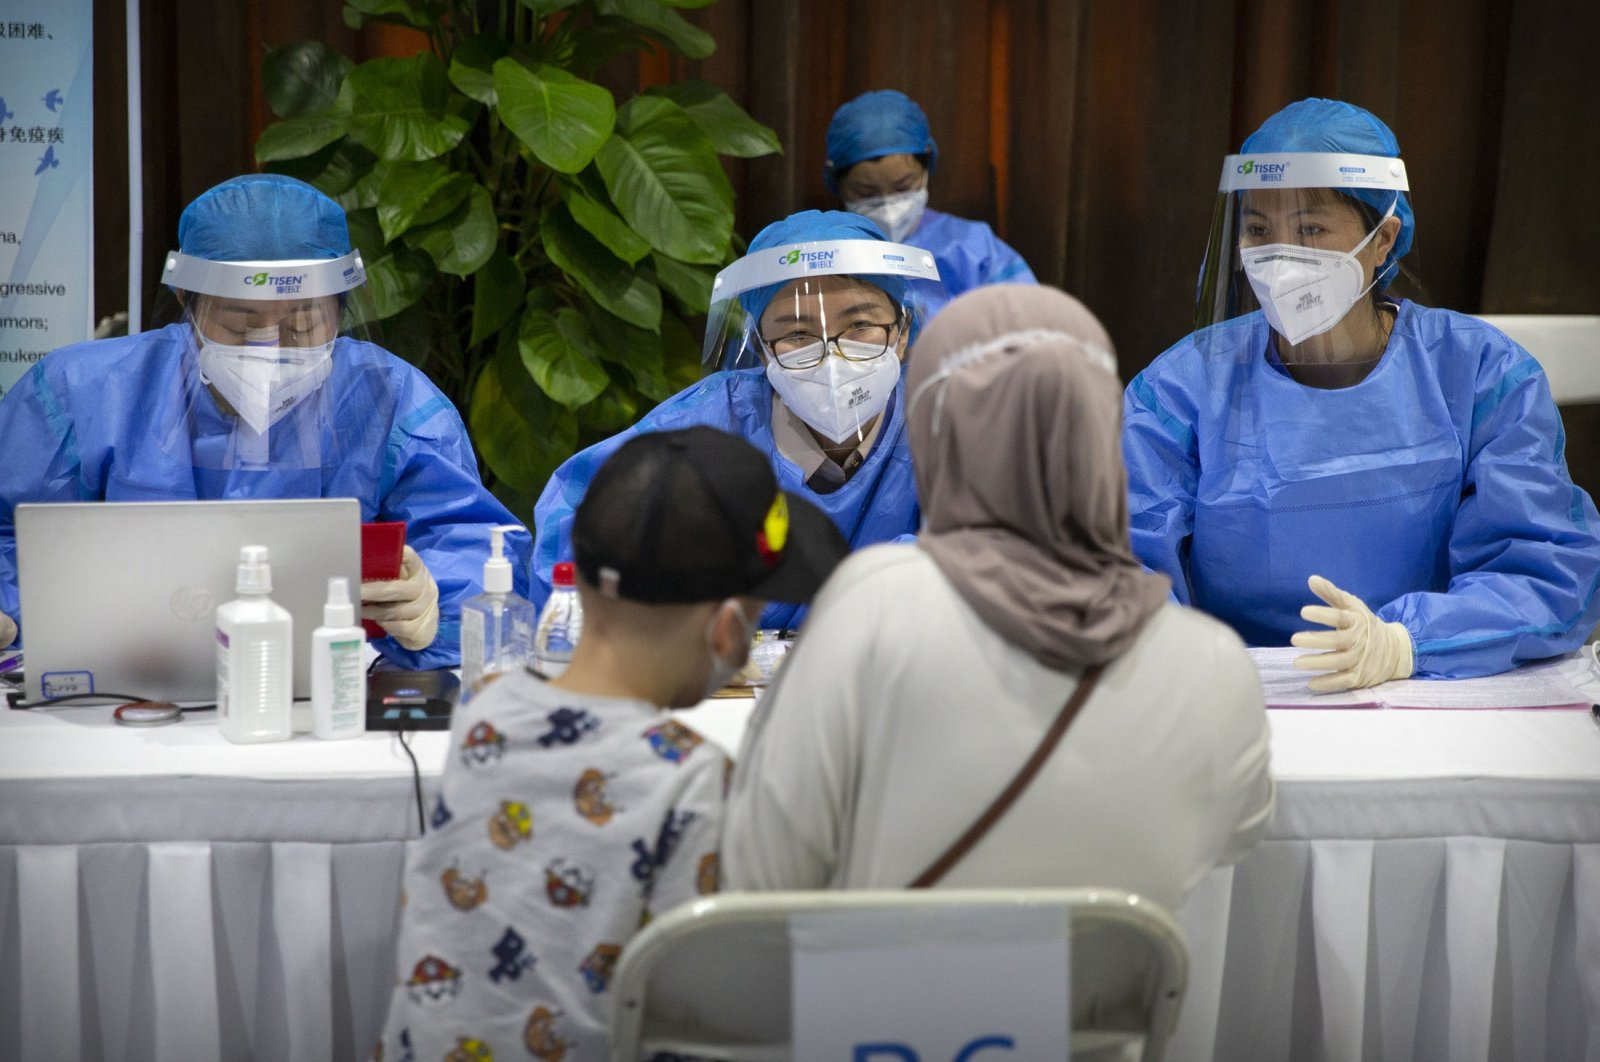 Workers wearing protective gear register a person during a COVID-19 vaccination session for resident foreign journalists at a vaccination center in Beijing, Tuesday, March 23, 2021. (AP Photo)